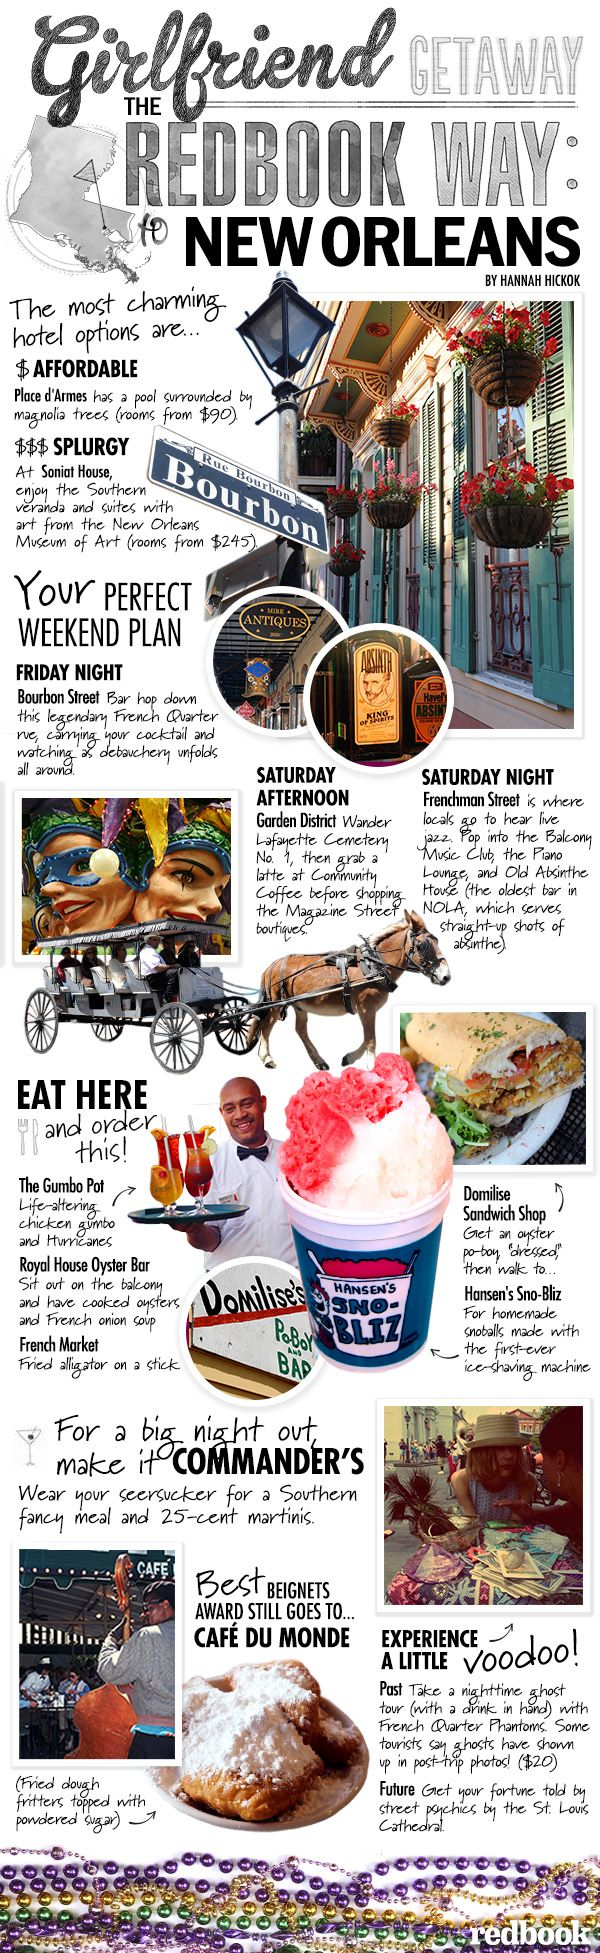 GOING IN SEPTEMBER!!!!New Orleans Travel Guide - What To Do, See, Eat, and Drink in NOLA - Redbook